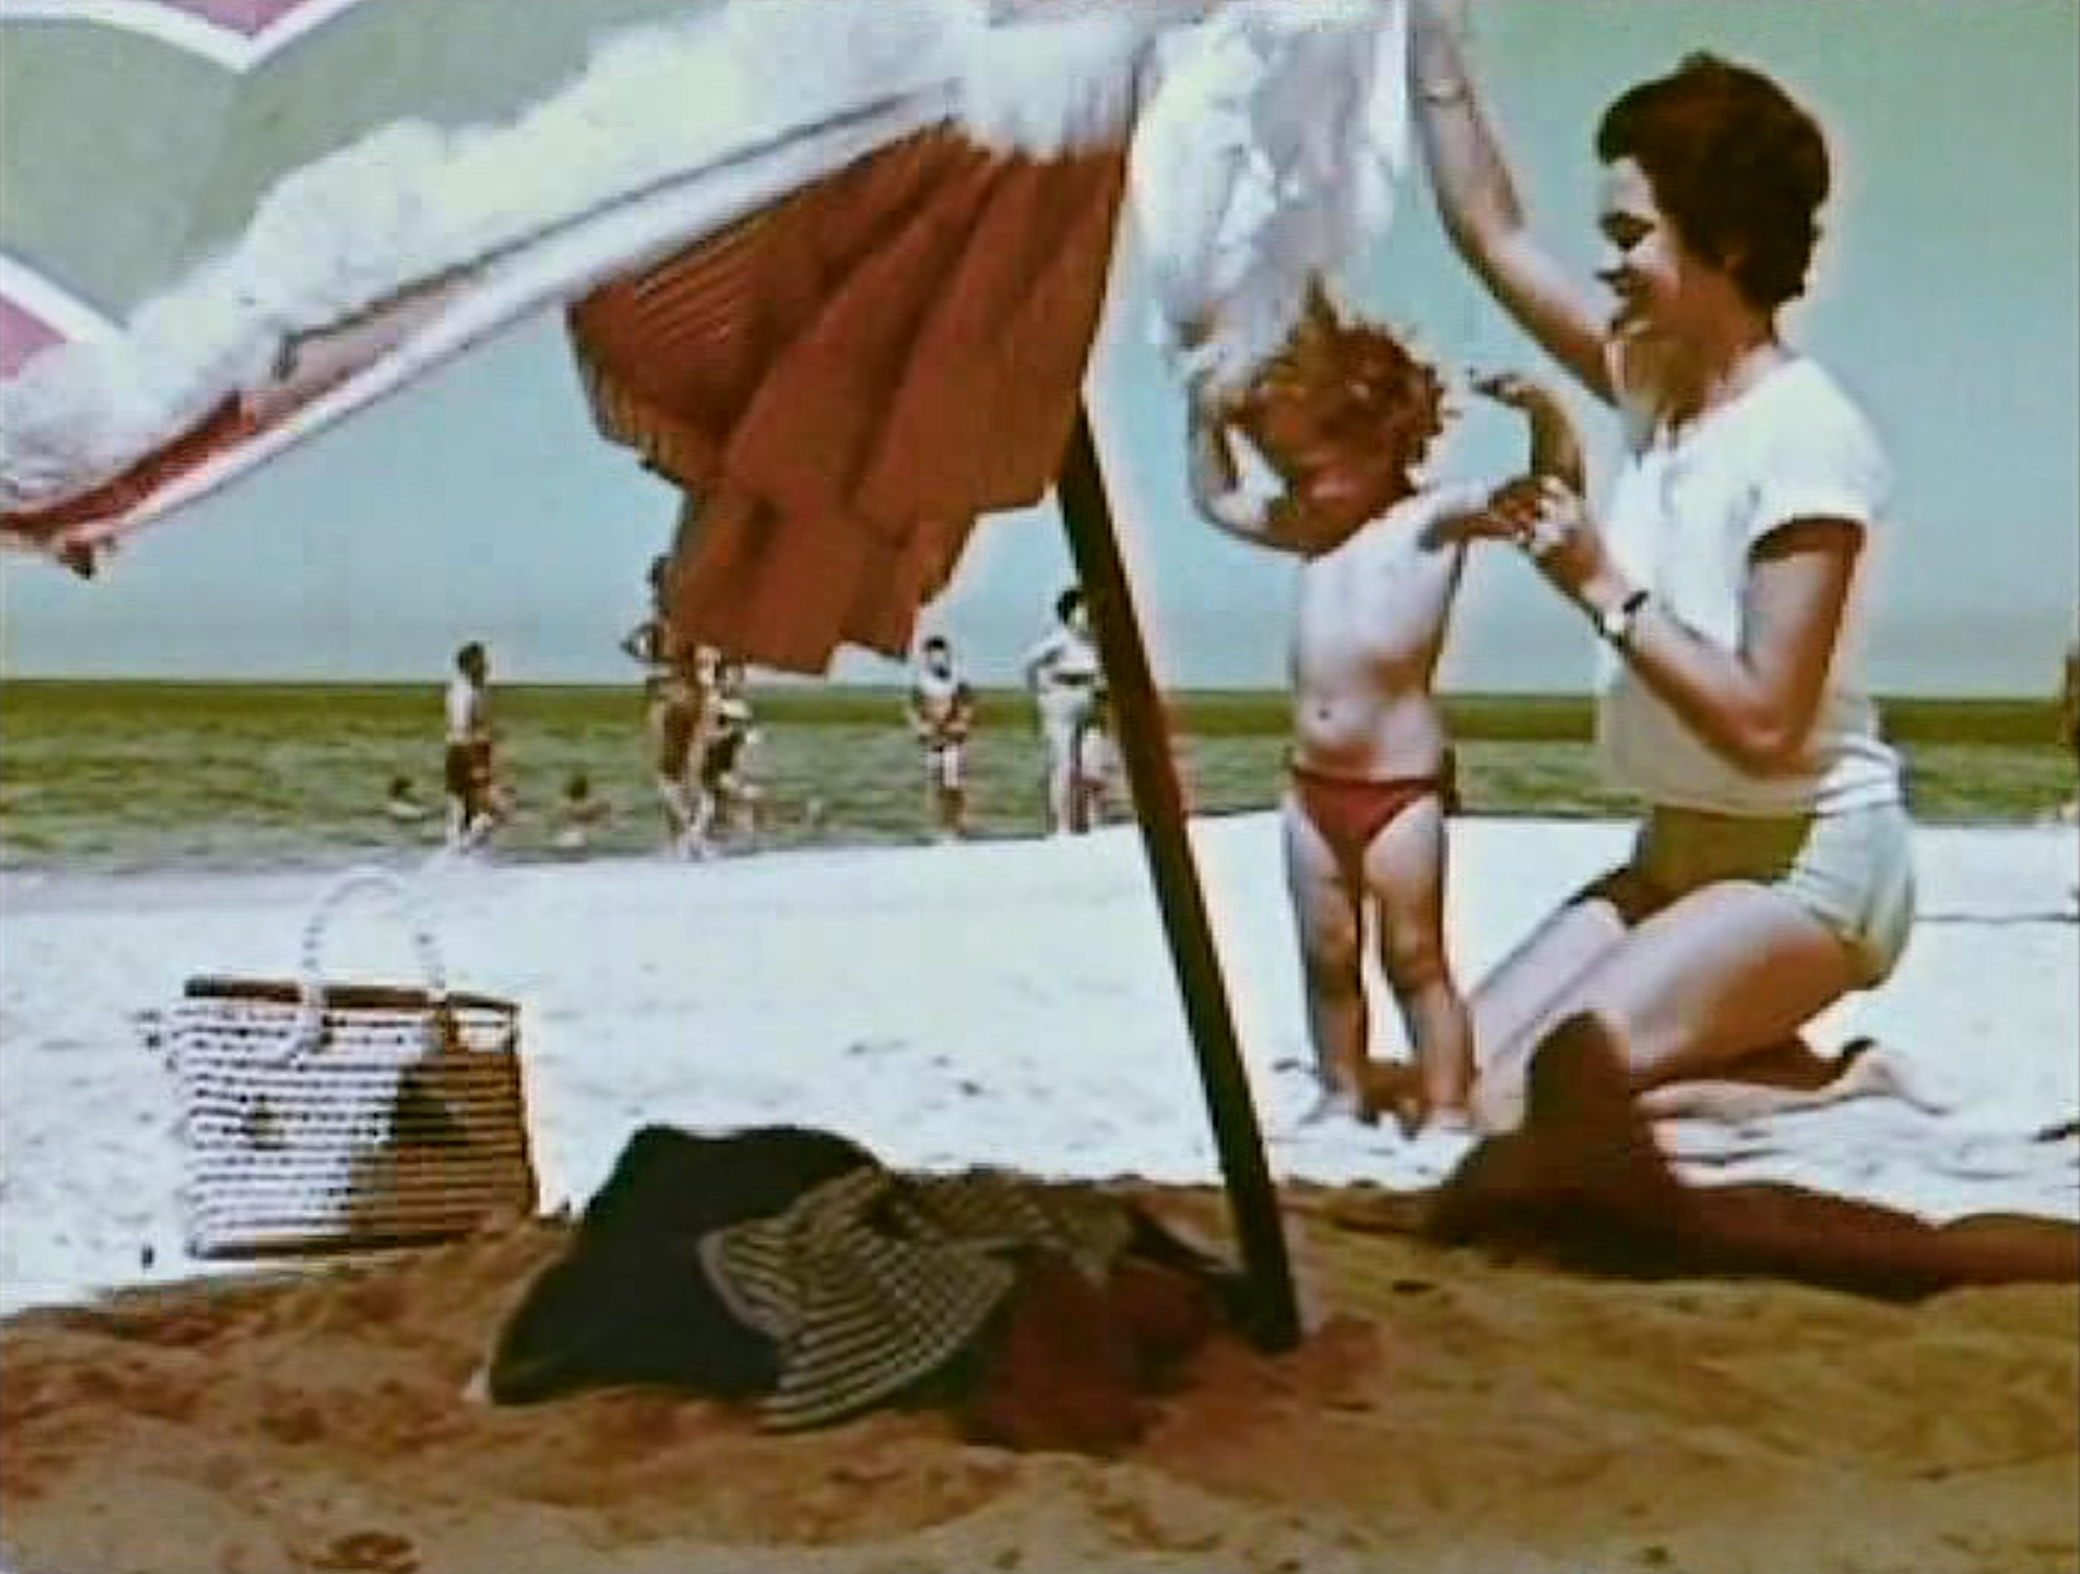 THE CITY ON THE BEACH (LA CIUDAD EN LA PLAYA)  (Ferruccio Musitelli, 1961)